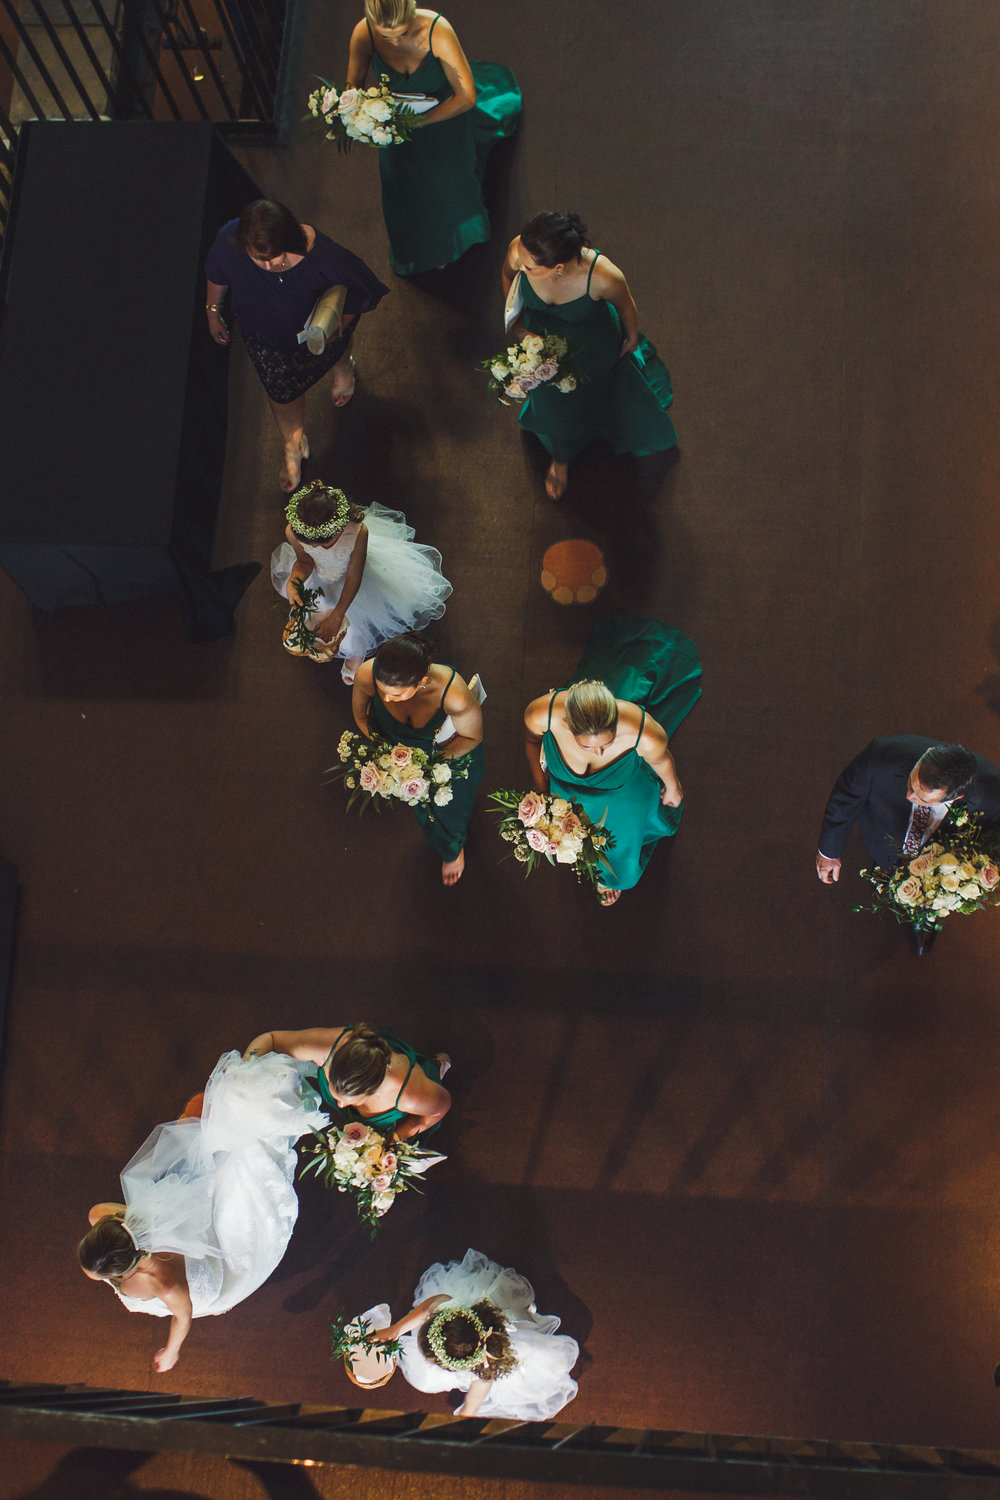 lightspace-brisbane-wedding-013.JPG